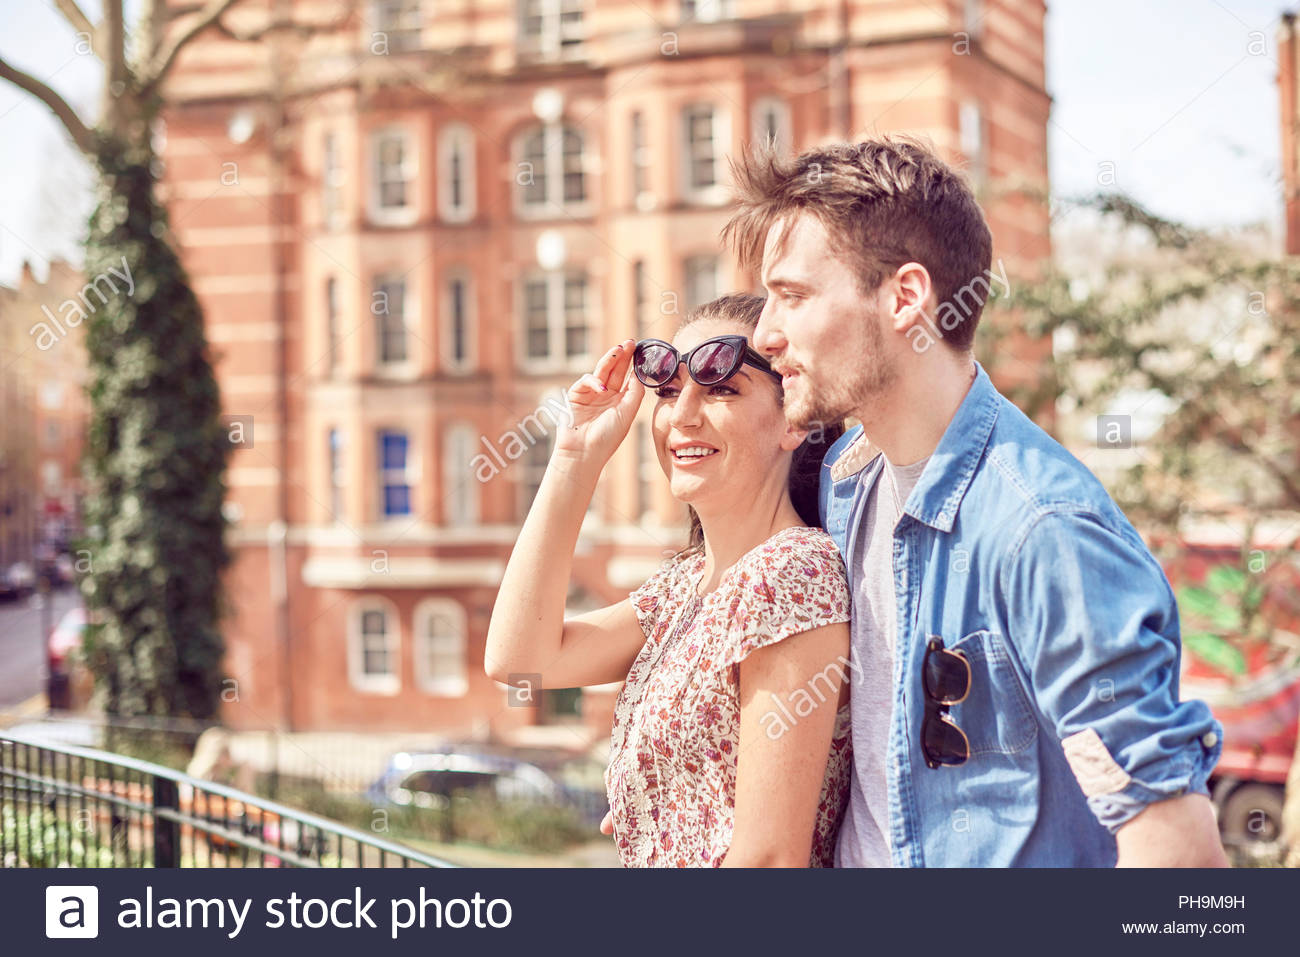 Teenage couple at park - Stock Image